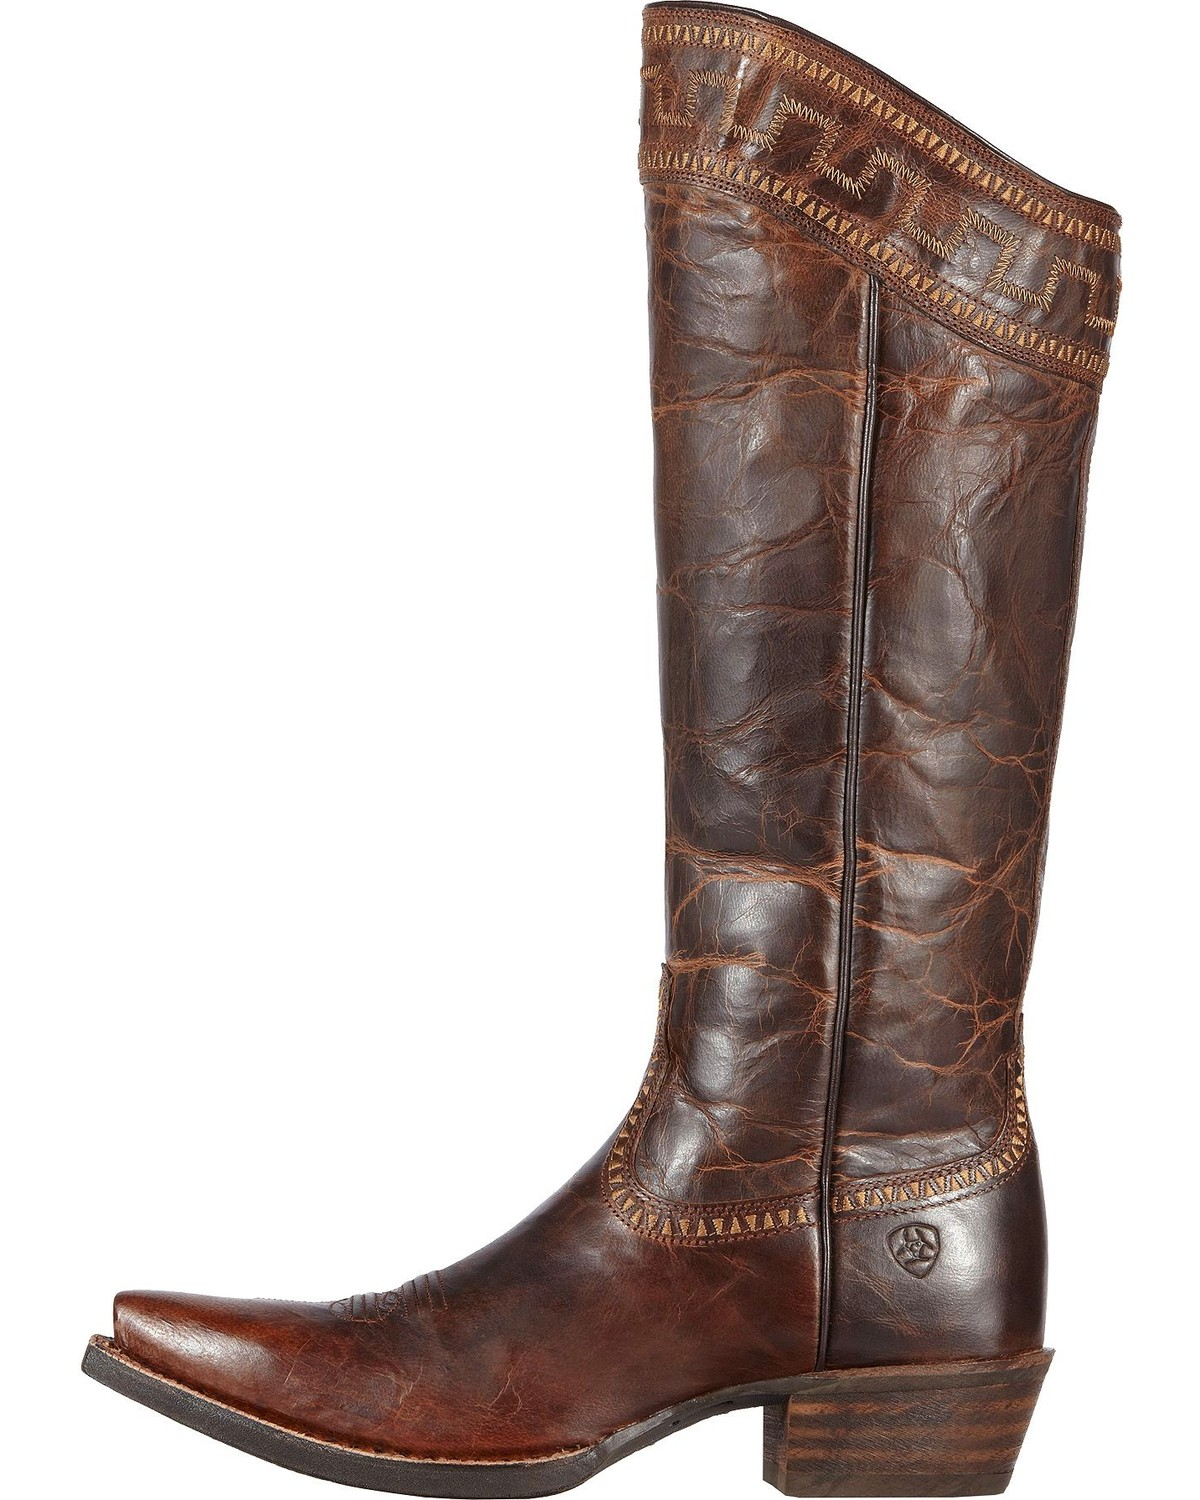 """Ariat Sahara 15"""" Cowgirl Riding Boots - Snip Toe 